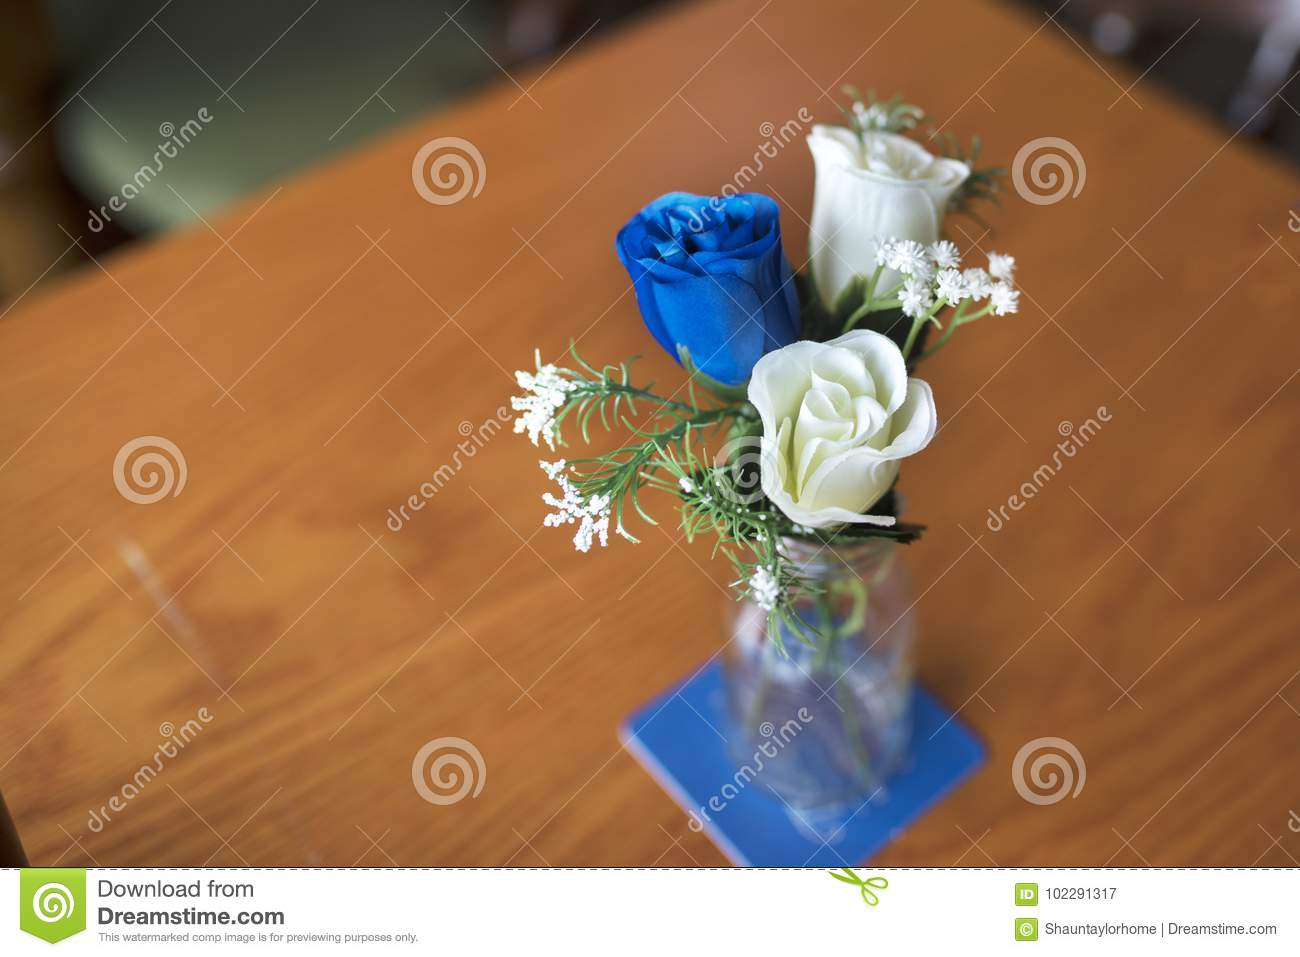 Close Up Of Blue And White Artificial Roses As A Table Decoration In on small clocks cheap, small handbags cheap, small baskets cheap, small trophies cheap, small tables cheap, small chairs cheap, small fish bowls cheap,